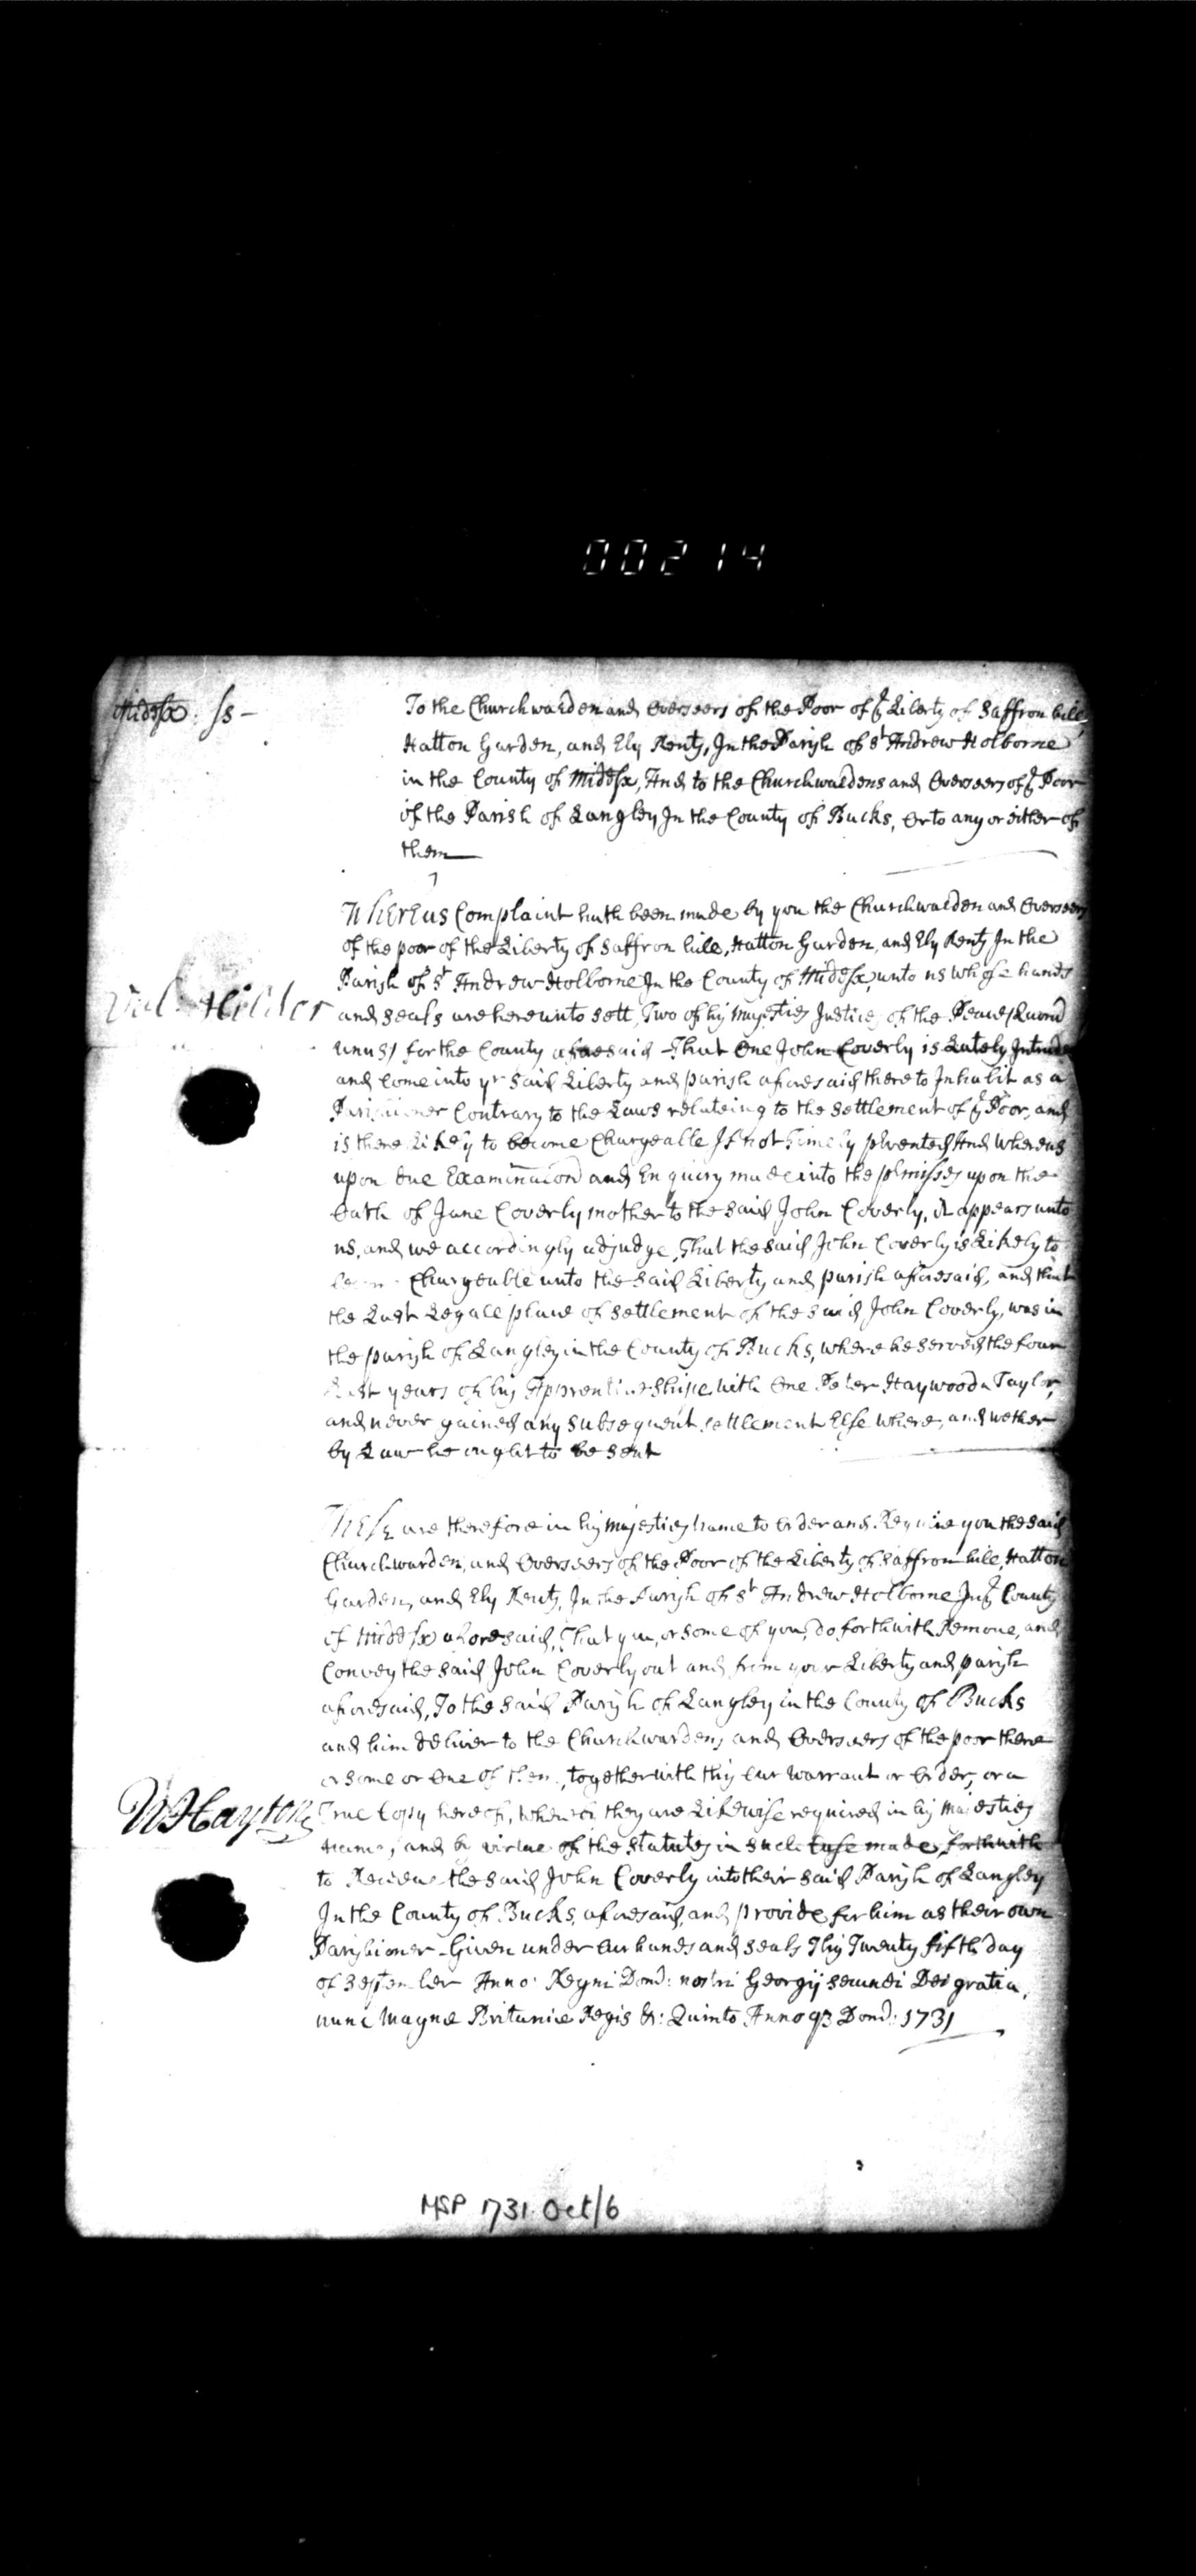 A copy of the judgement passed by the Middlesex bench in response to a poor law appeal relating to the settlement of John Coverly, 12 September 1731